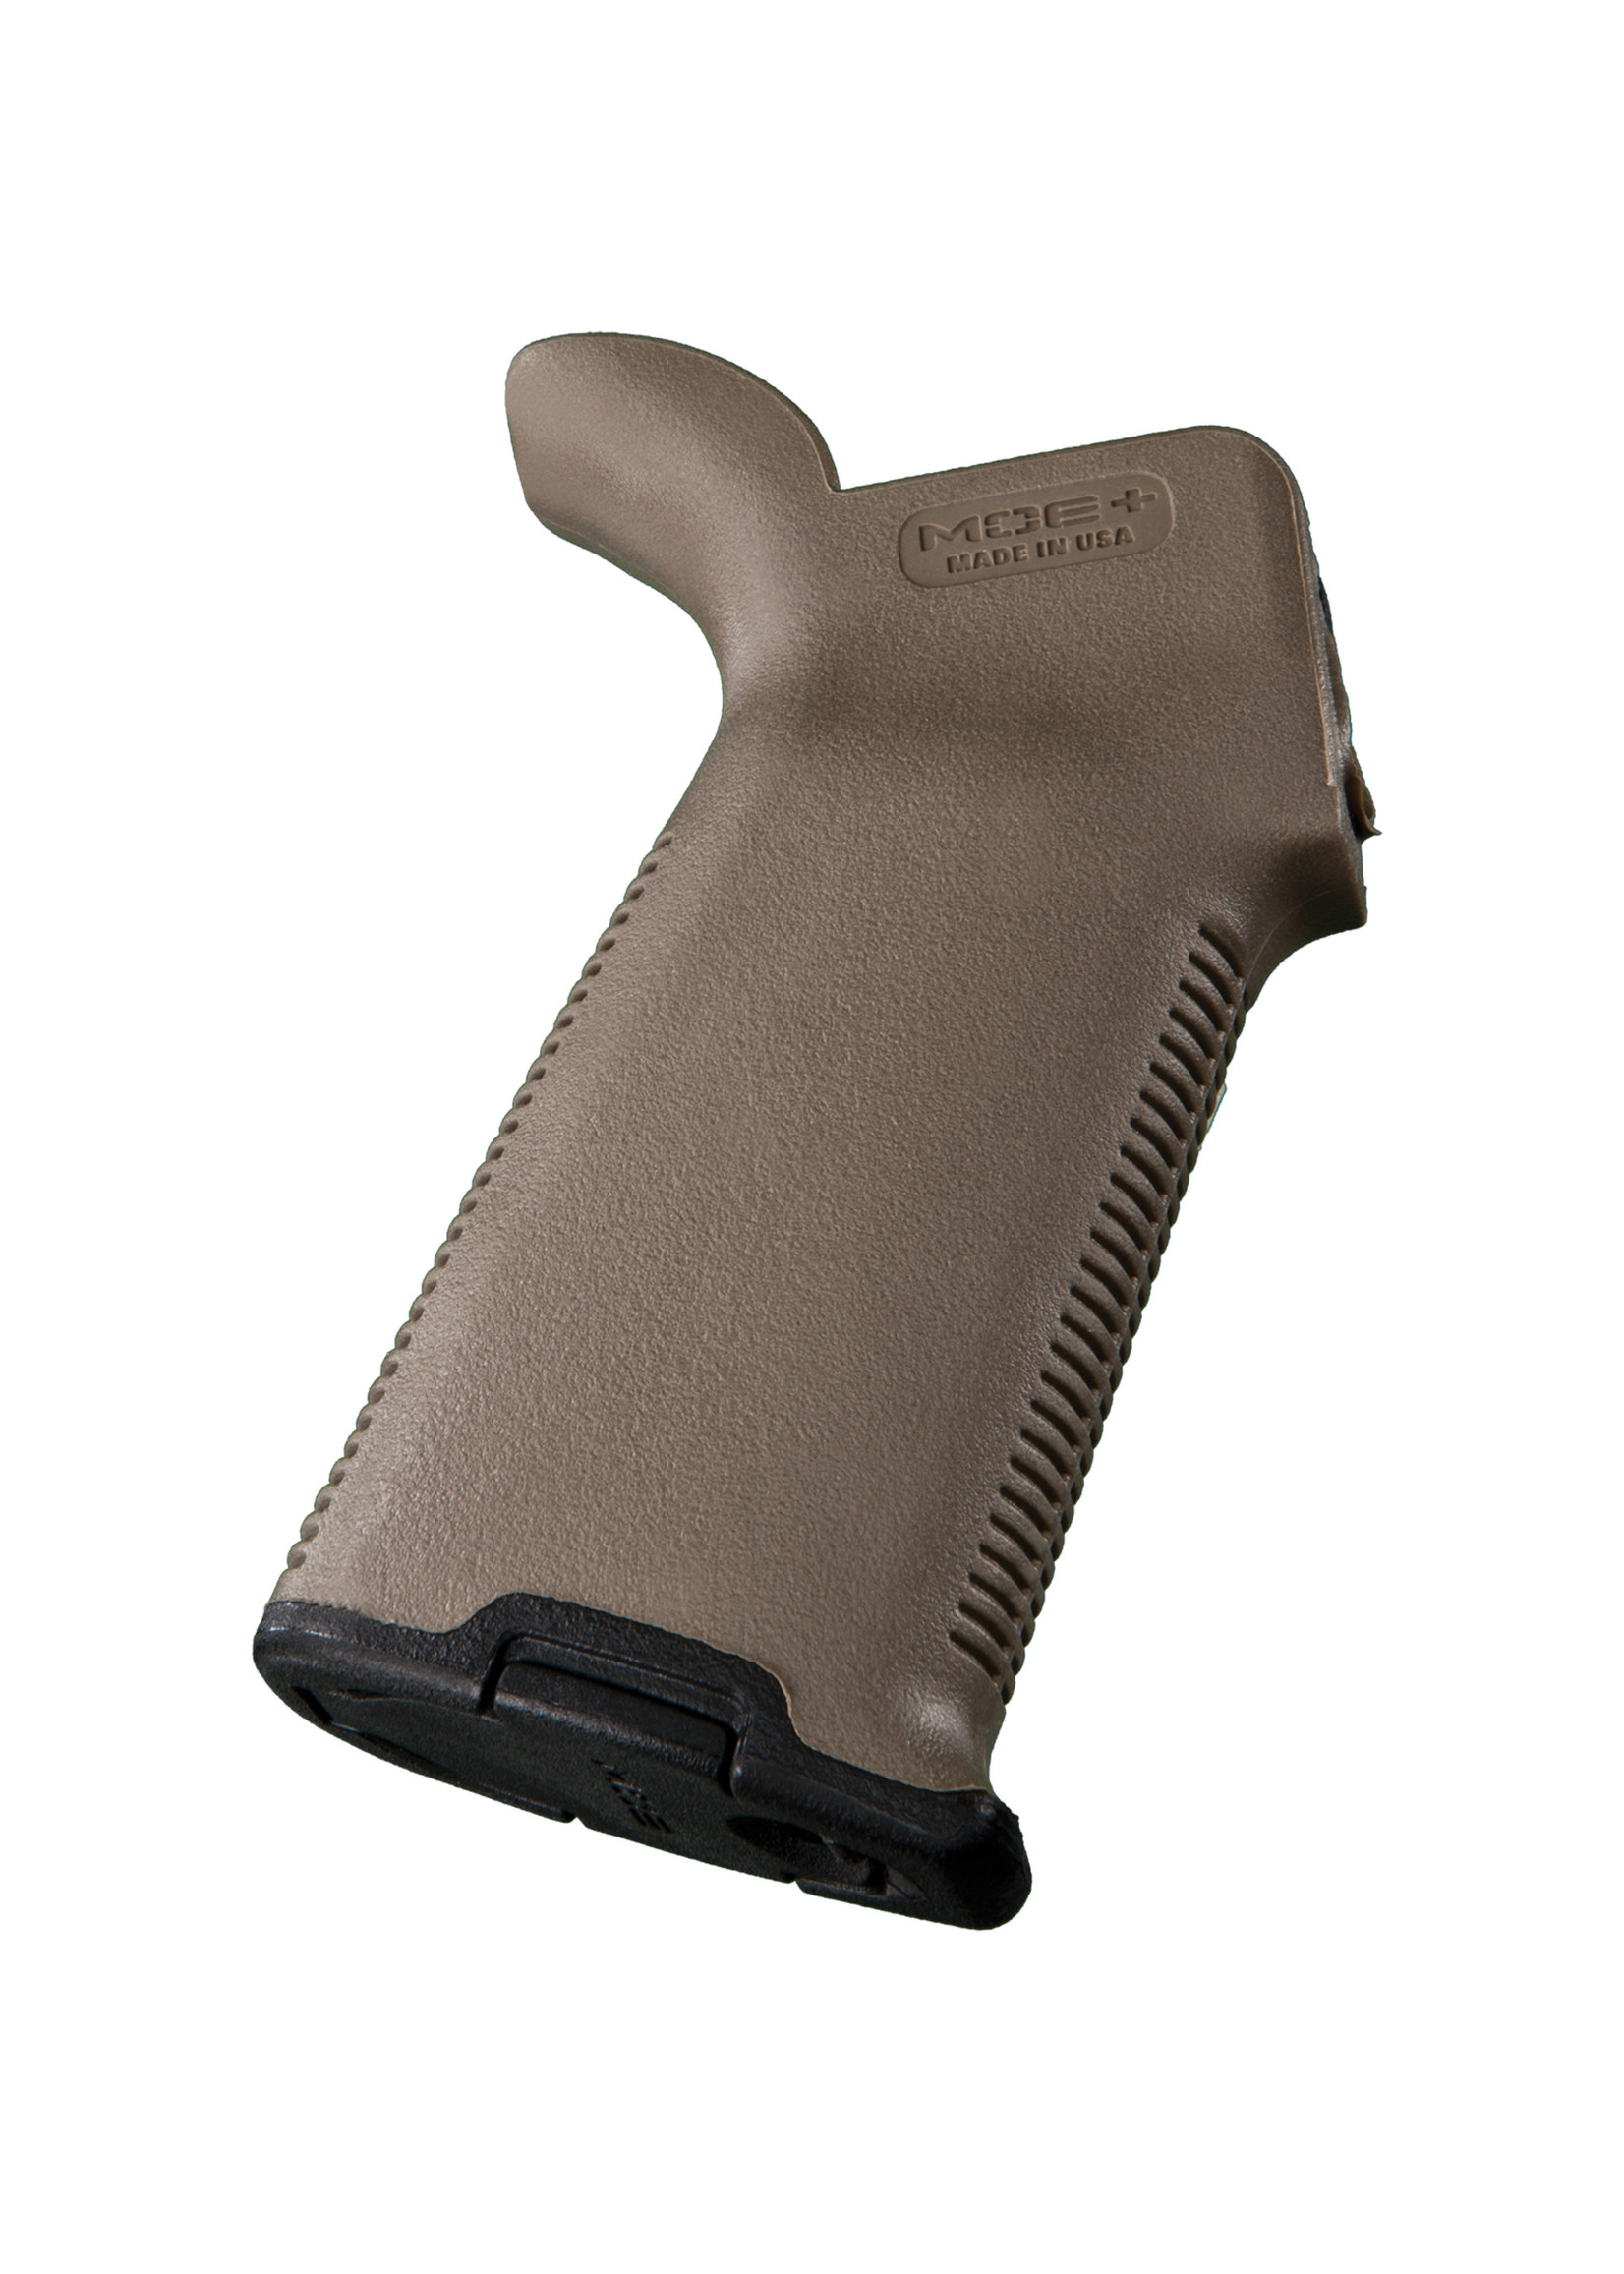 Magpul Magpul Industries, MOE Grip, Fits AR Rifles, with Storage Compartment, Flat Dark Earth